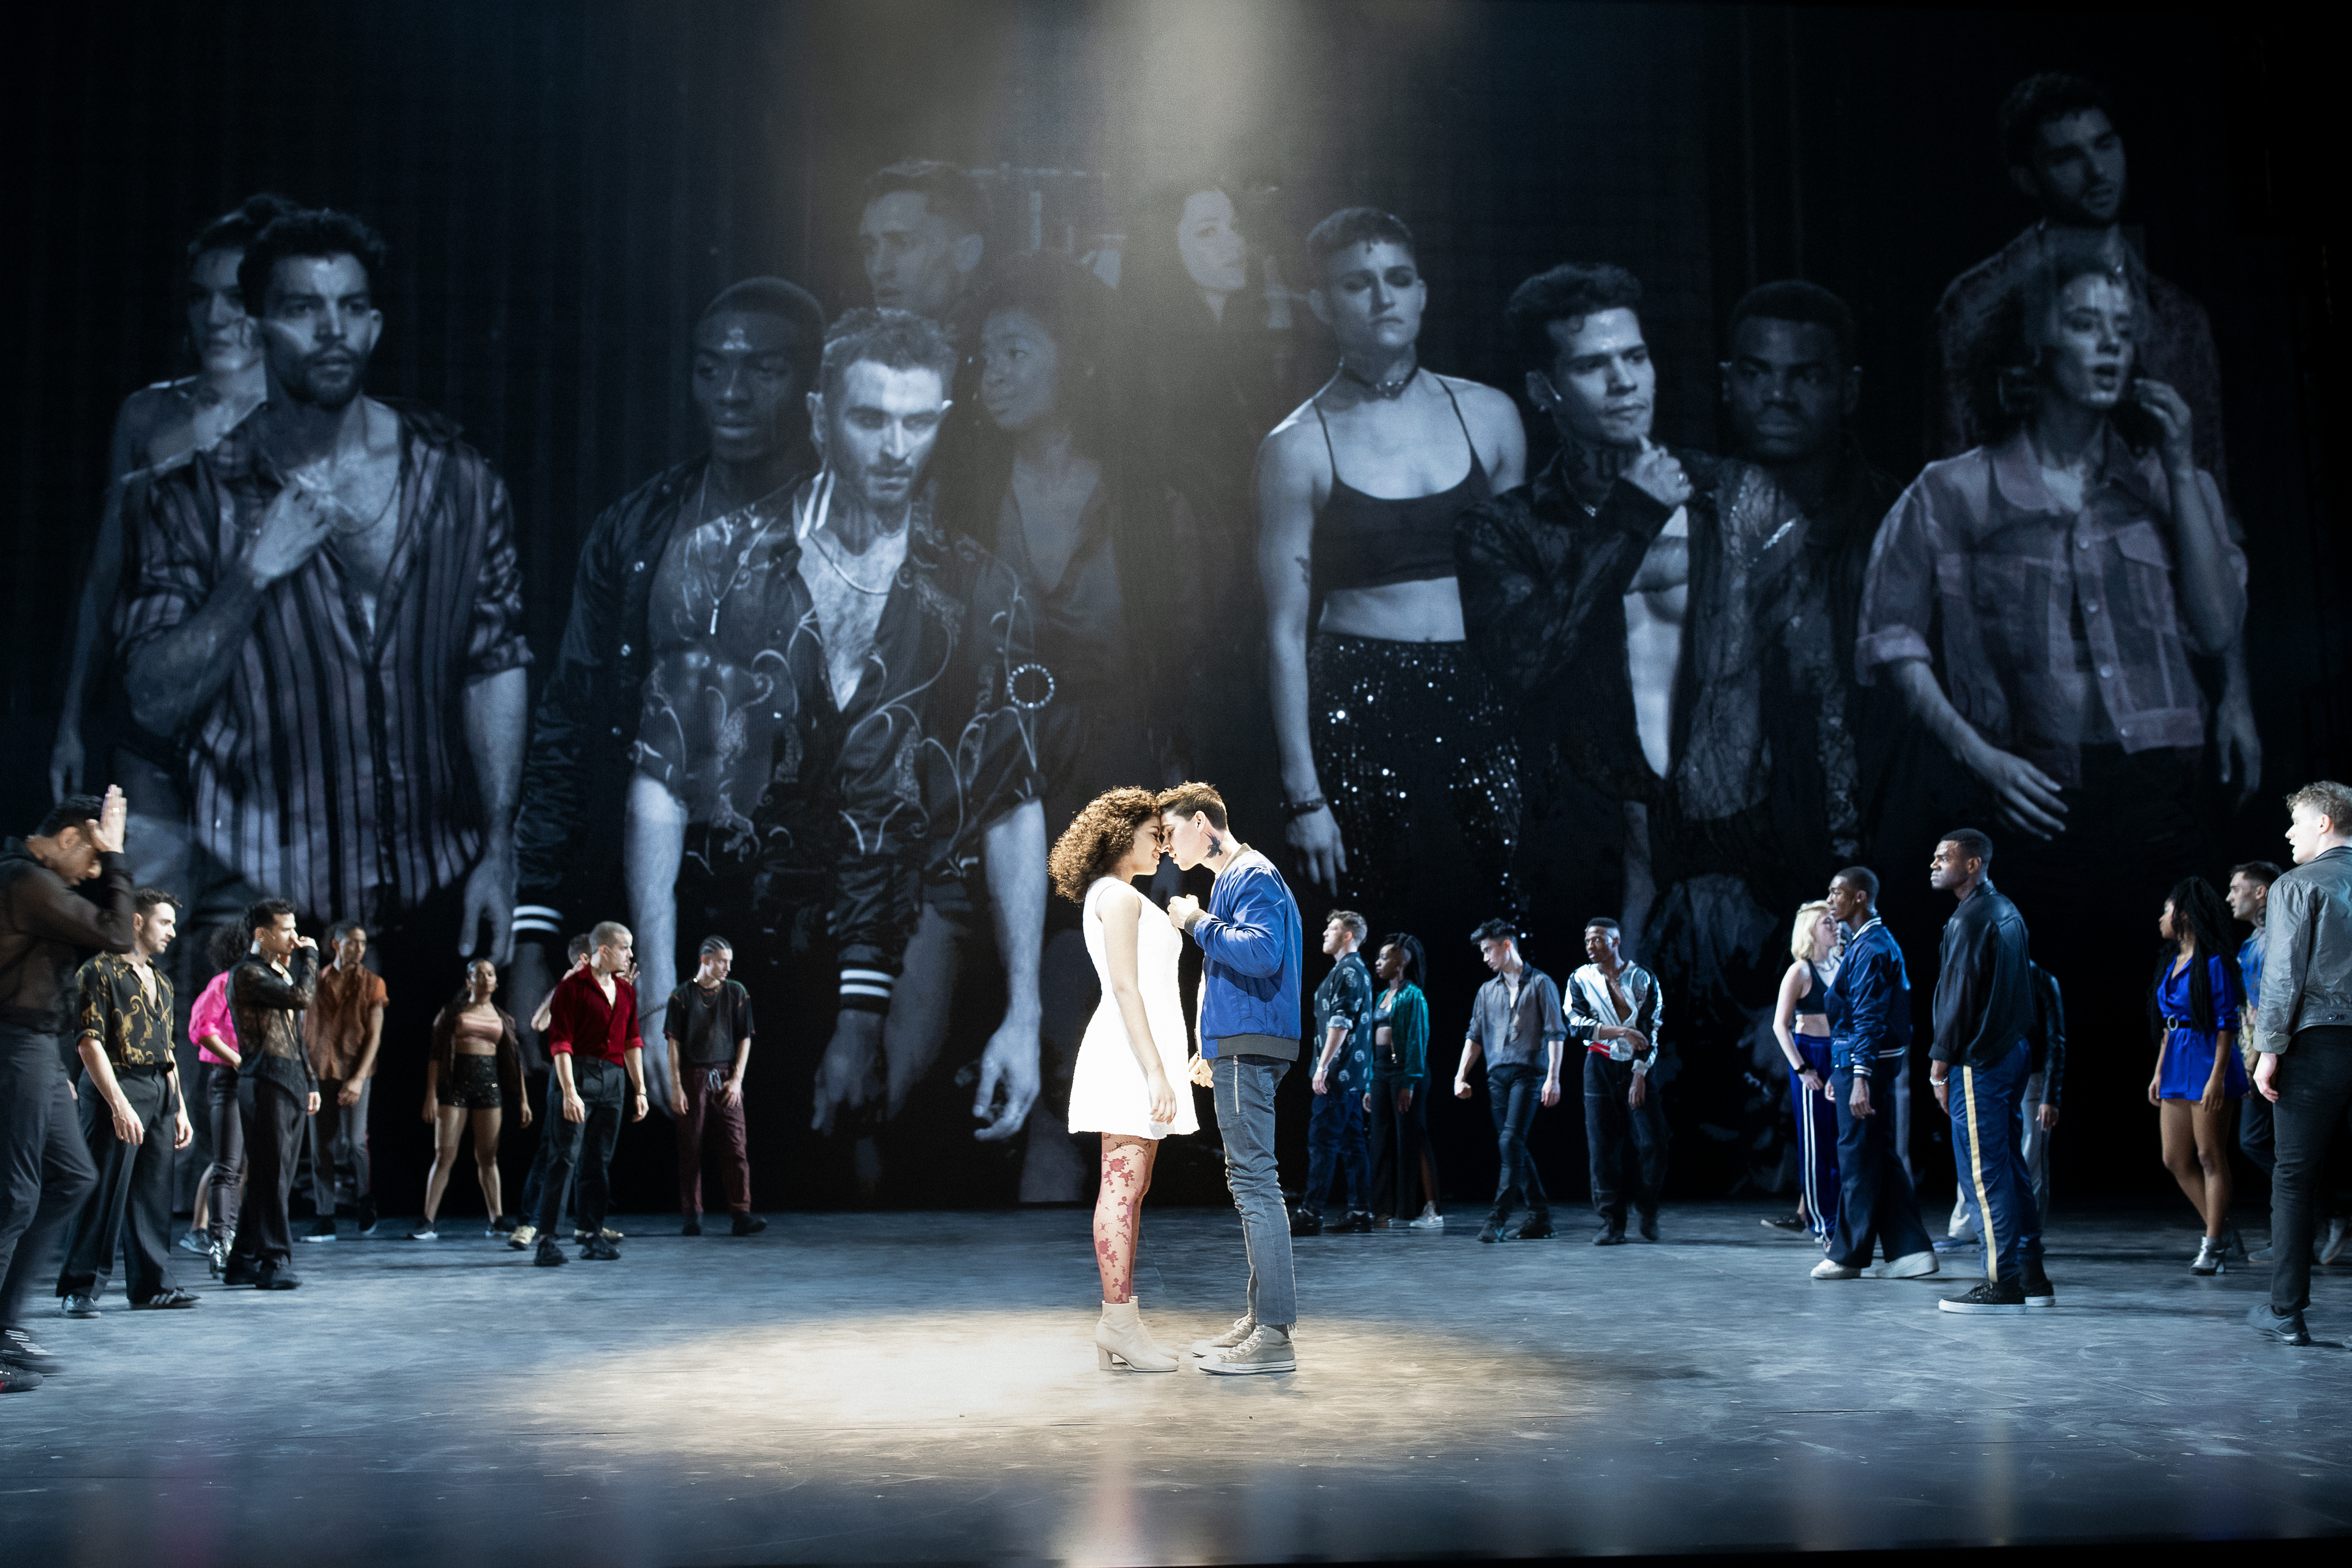 A man and woman embrace at the center of a stage, under a spotlight. Behind them, a crowd lurks in a circle, and above the crowd are larger-than-life video projections of the cast.